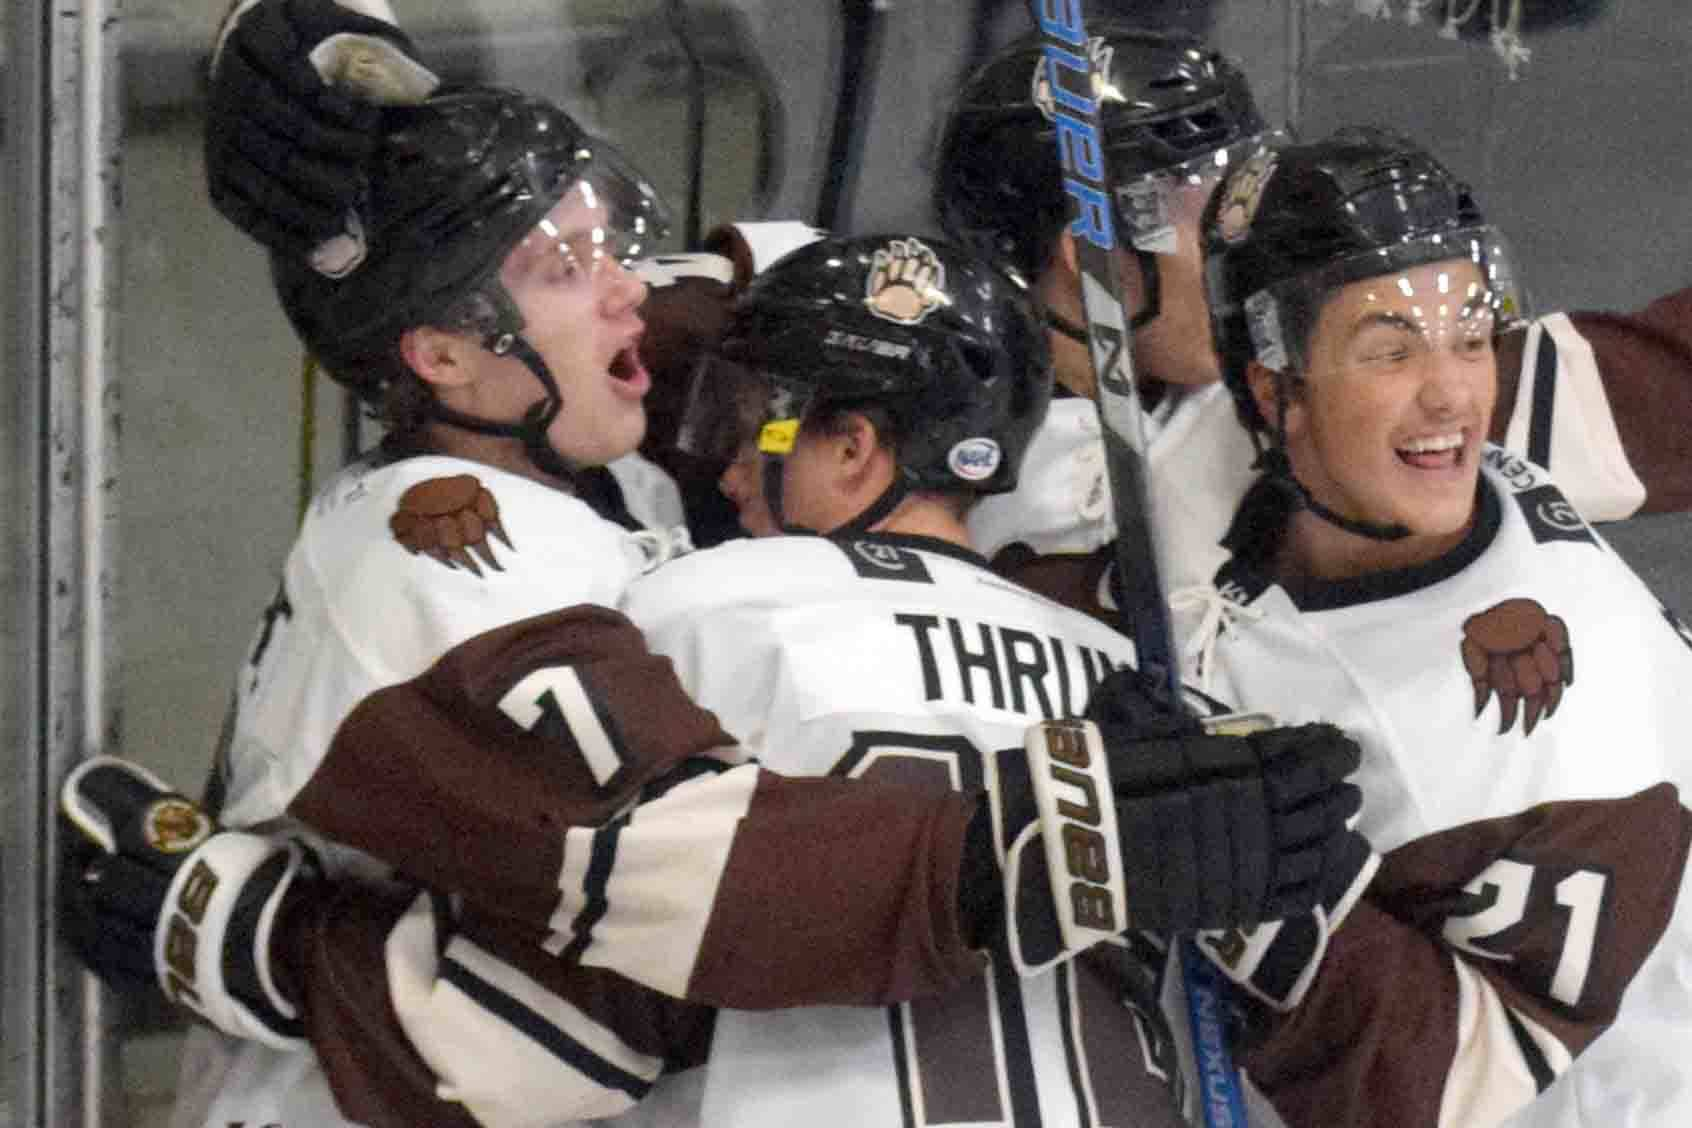 The Kenai River Brown Bears celebrate the first-period goal of Logan Ritchie (far left) on Thursday, Nov. 21, 2019, at the Soldotna Regional Sports Complex in Soldotna, Alaska. (Photo by Jeff Helminiak/Peninsula Clarion)